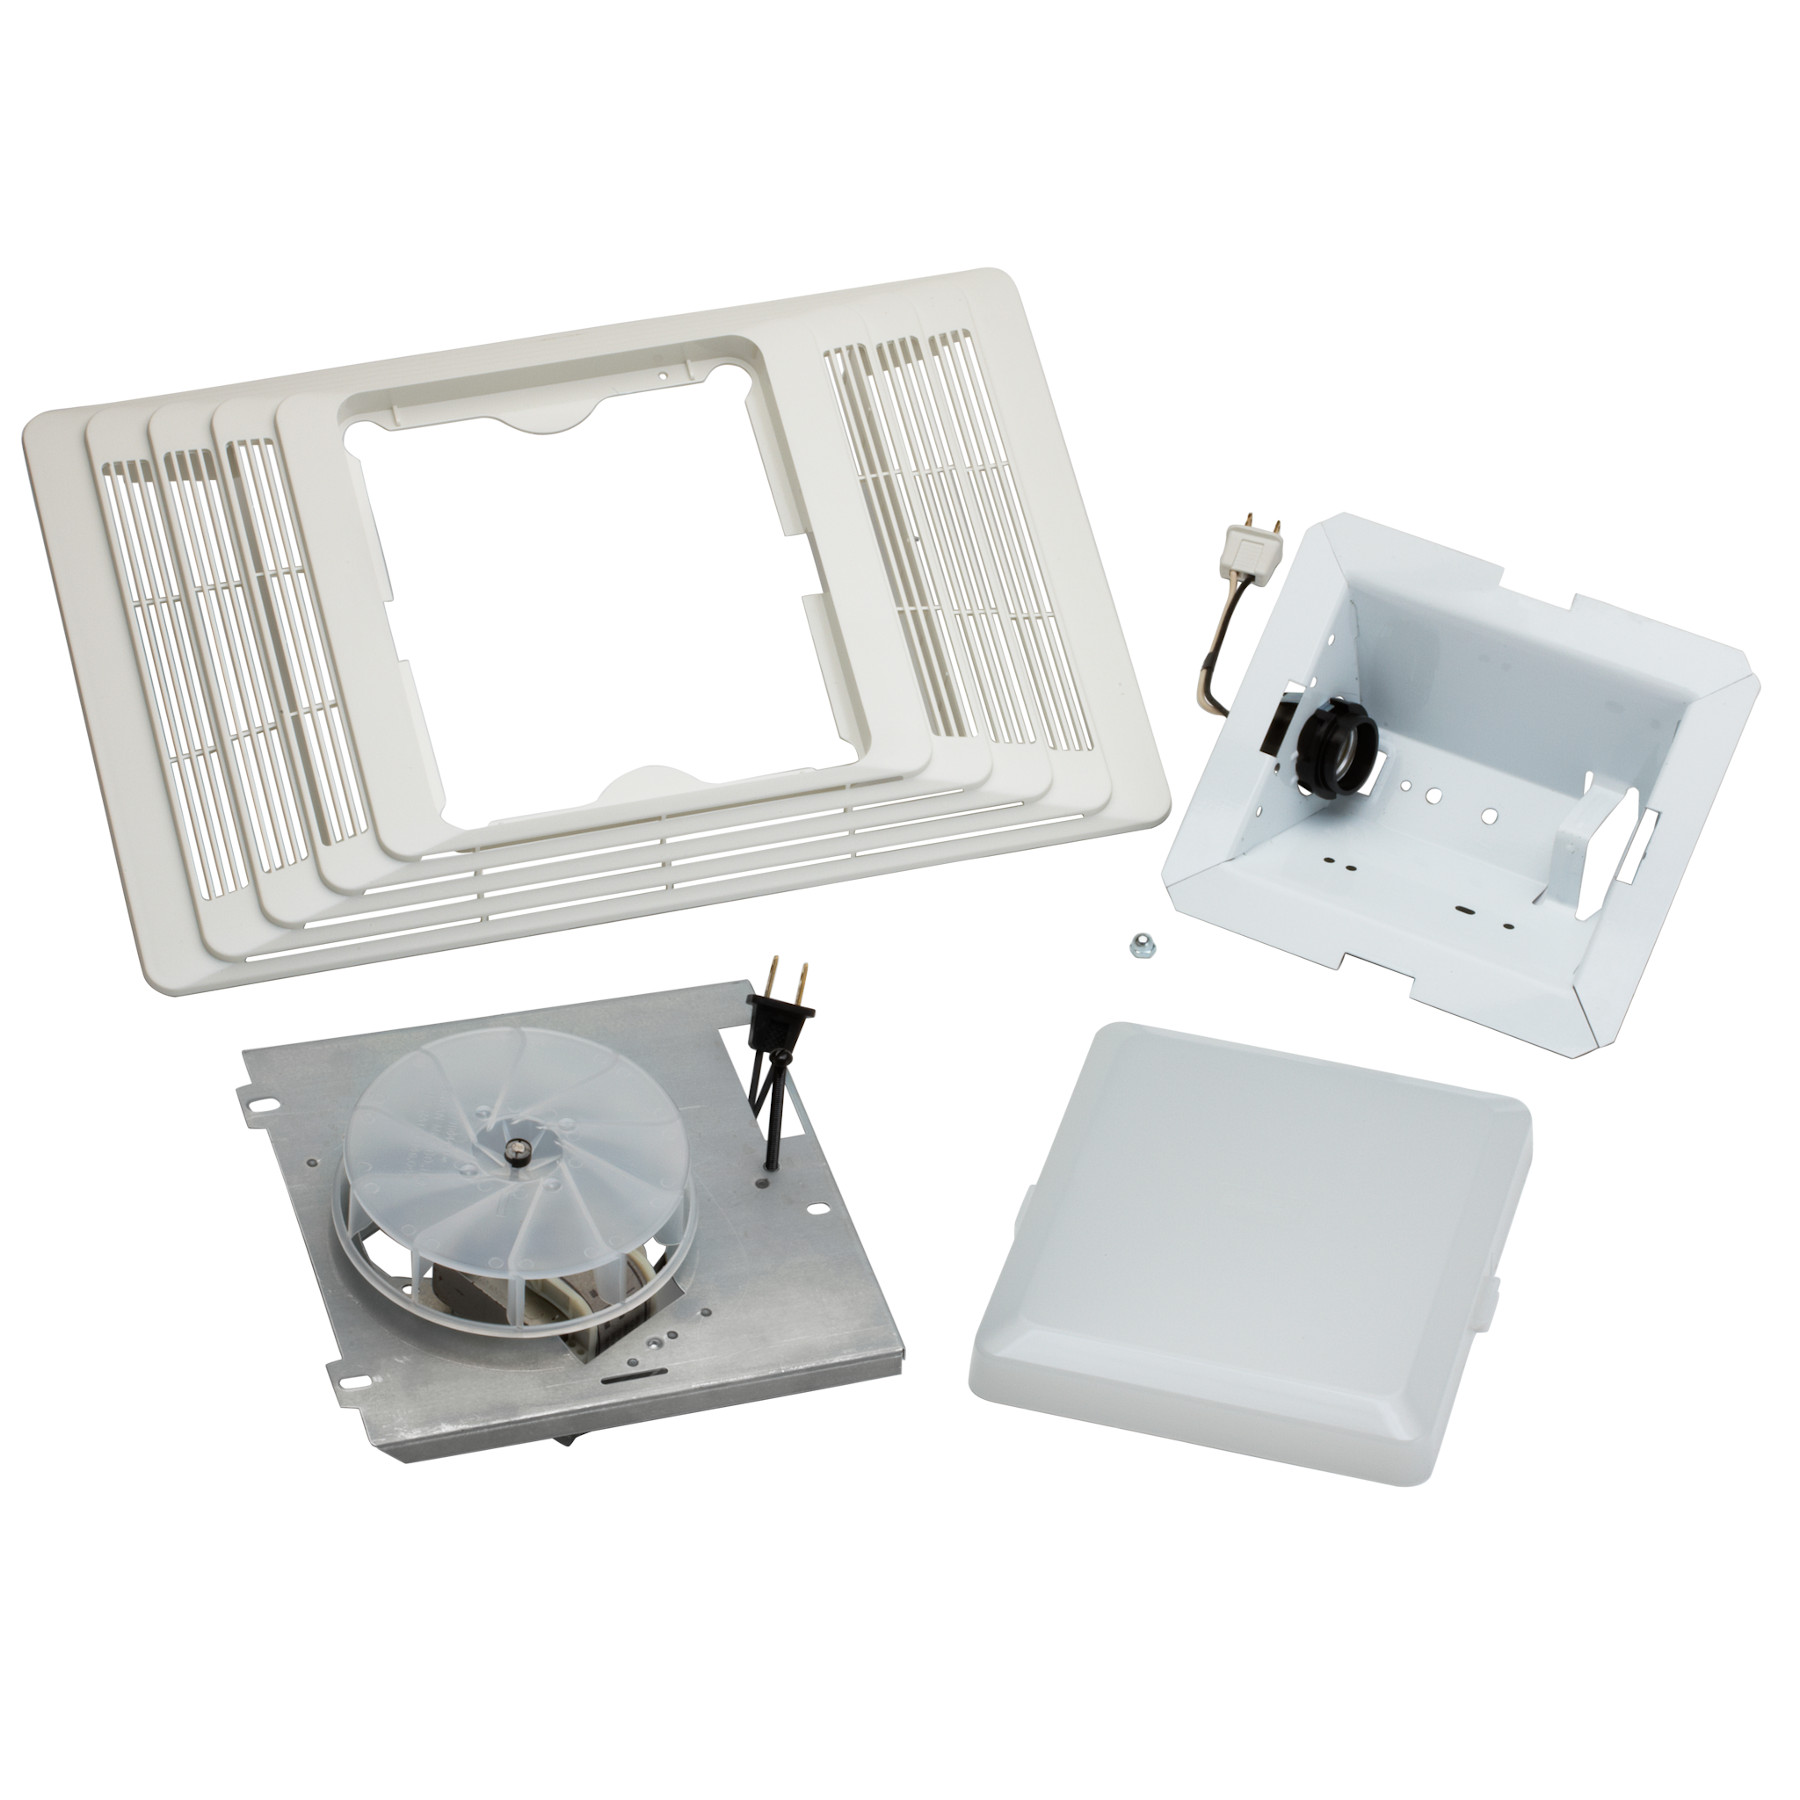 Broan® 70 CFM Ventilation Fan/Light Assembly & Grille Finish Pack, 4.0 Sones, 100W Light.